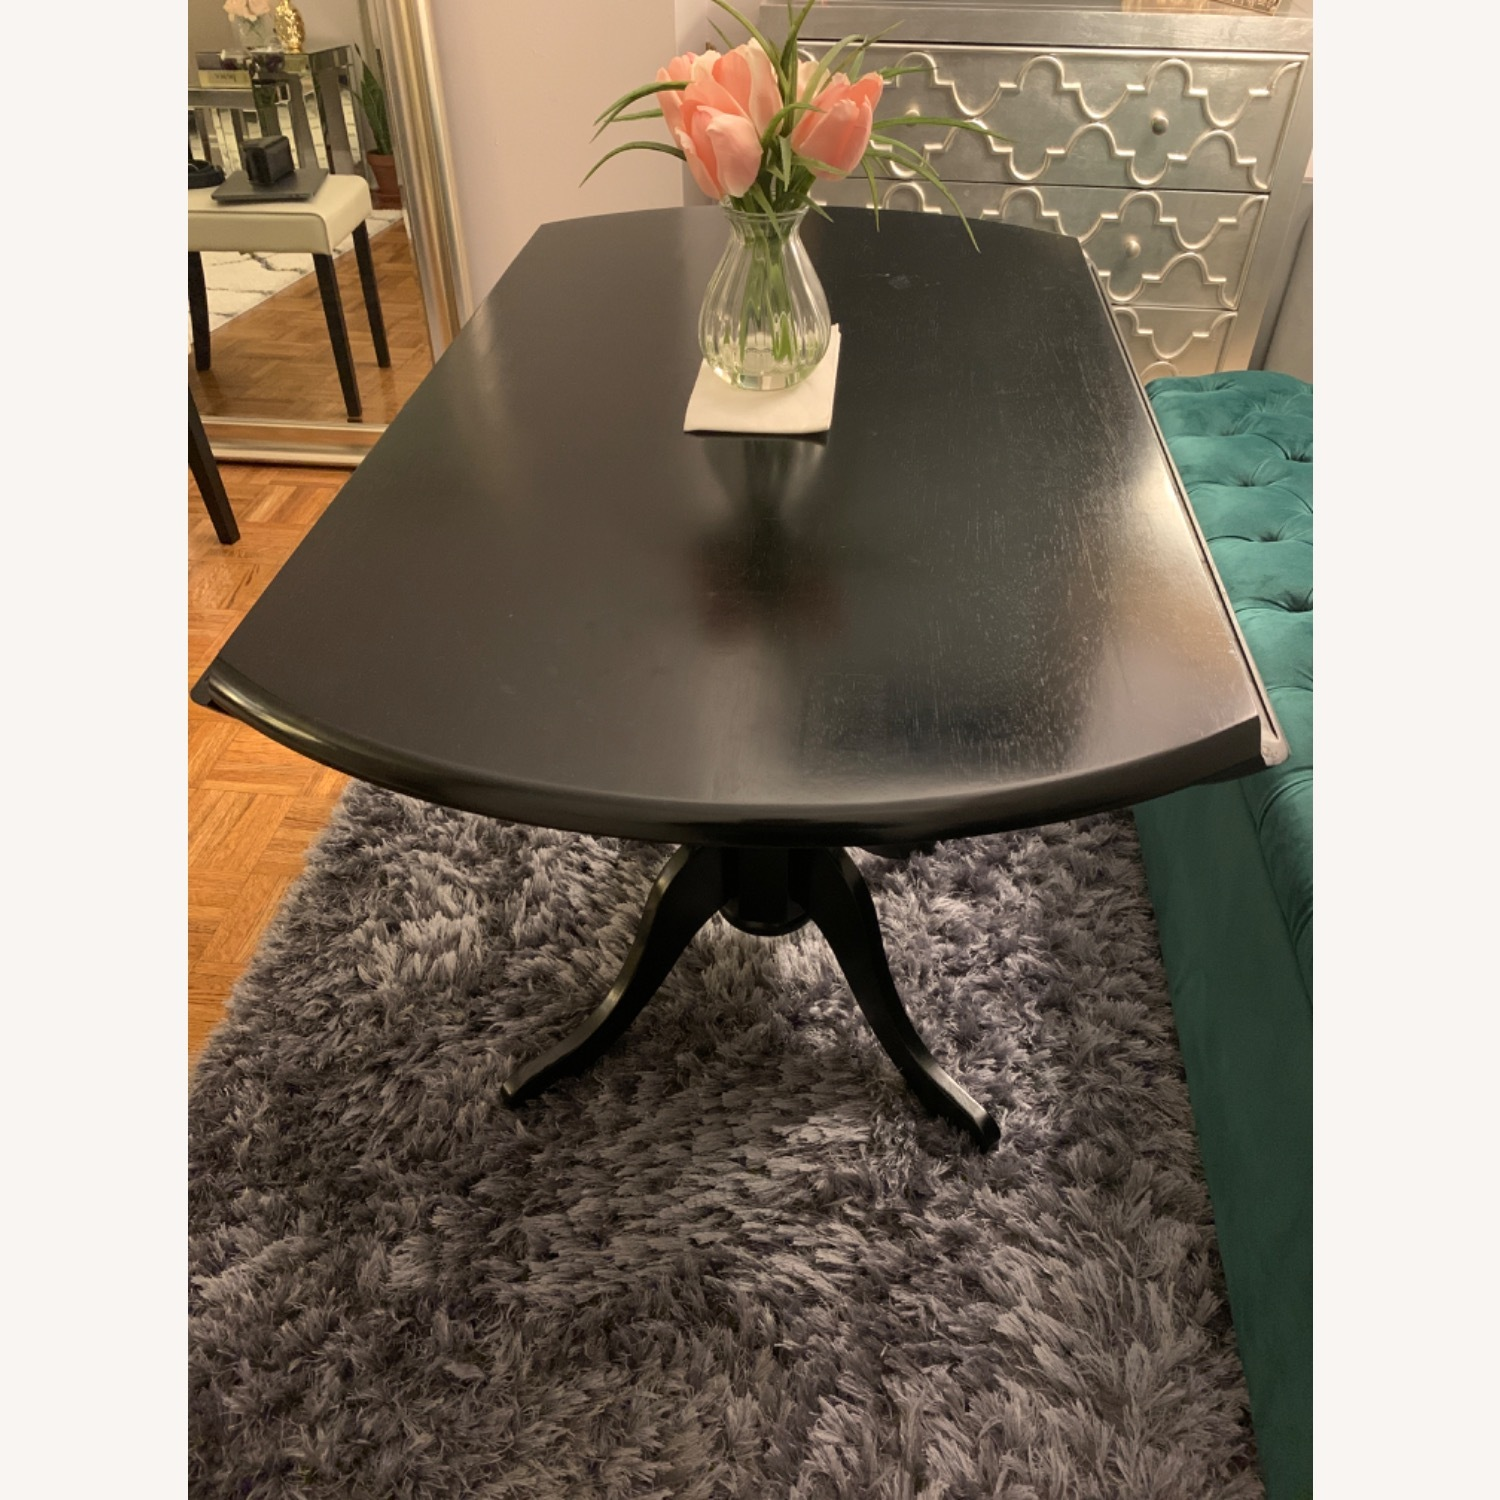 Round Drop Leaf Dining Table Set - image-8